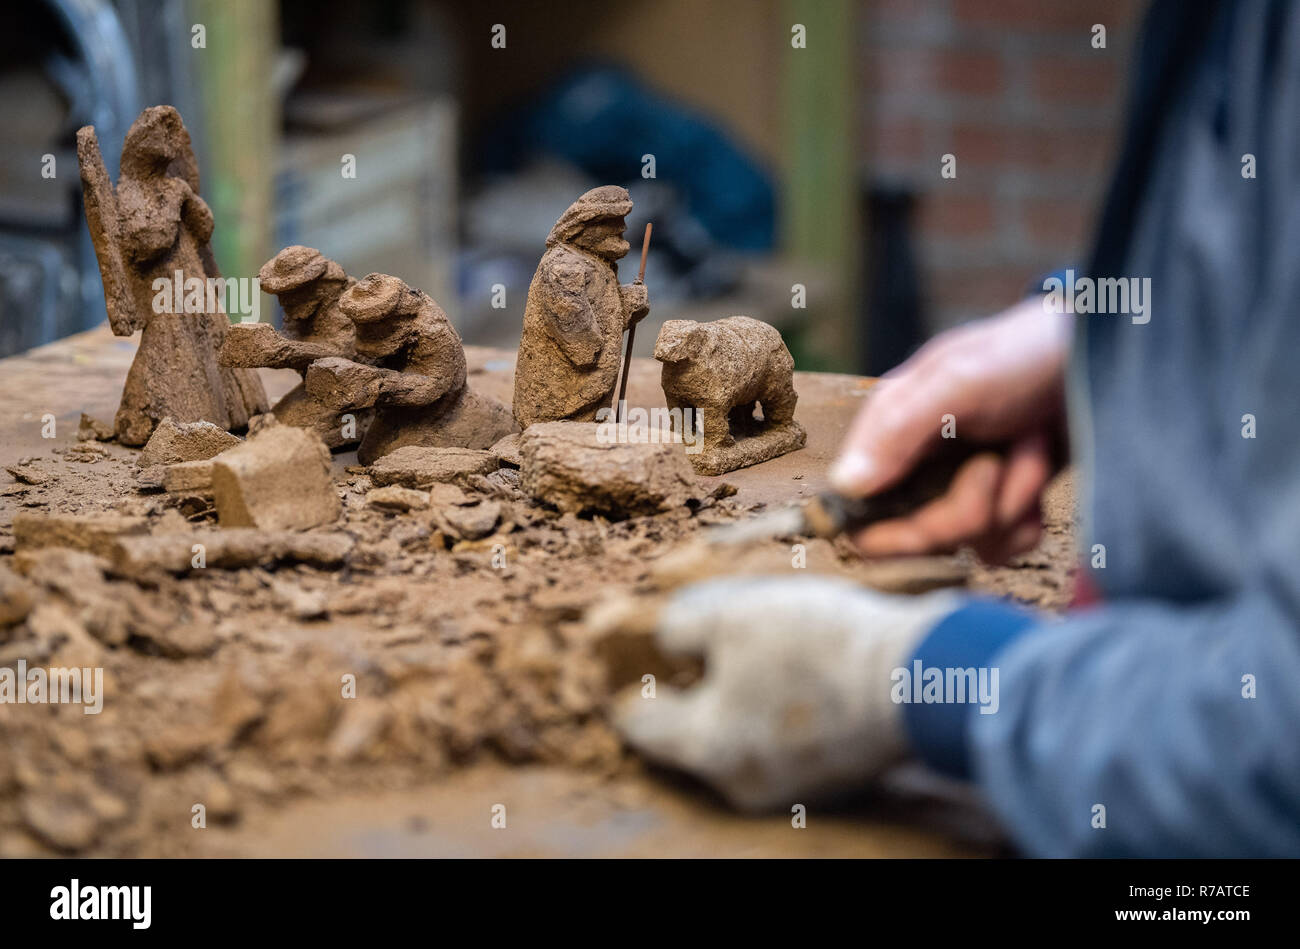 Saterland, Germany. 22nd Nov, 2018. Christmas figures made of peat stand on a table in the workshop of Karl-Heinz Brinkmann, while Brinkmann carves a piece of peat. The 64 year old Saterland artist works with many materials. But the dried white peat is special: it is 2000 years old. (to dpa '2000 years old: Christmas cribs from peat' from 09.12.2018) Credit: Mohssen Assanimoghaddam/dpa/Alamy Live News - Stock Image